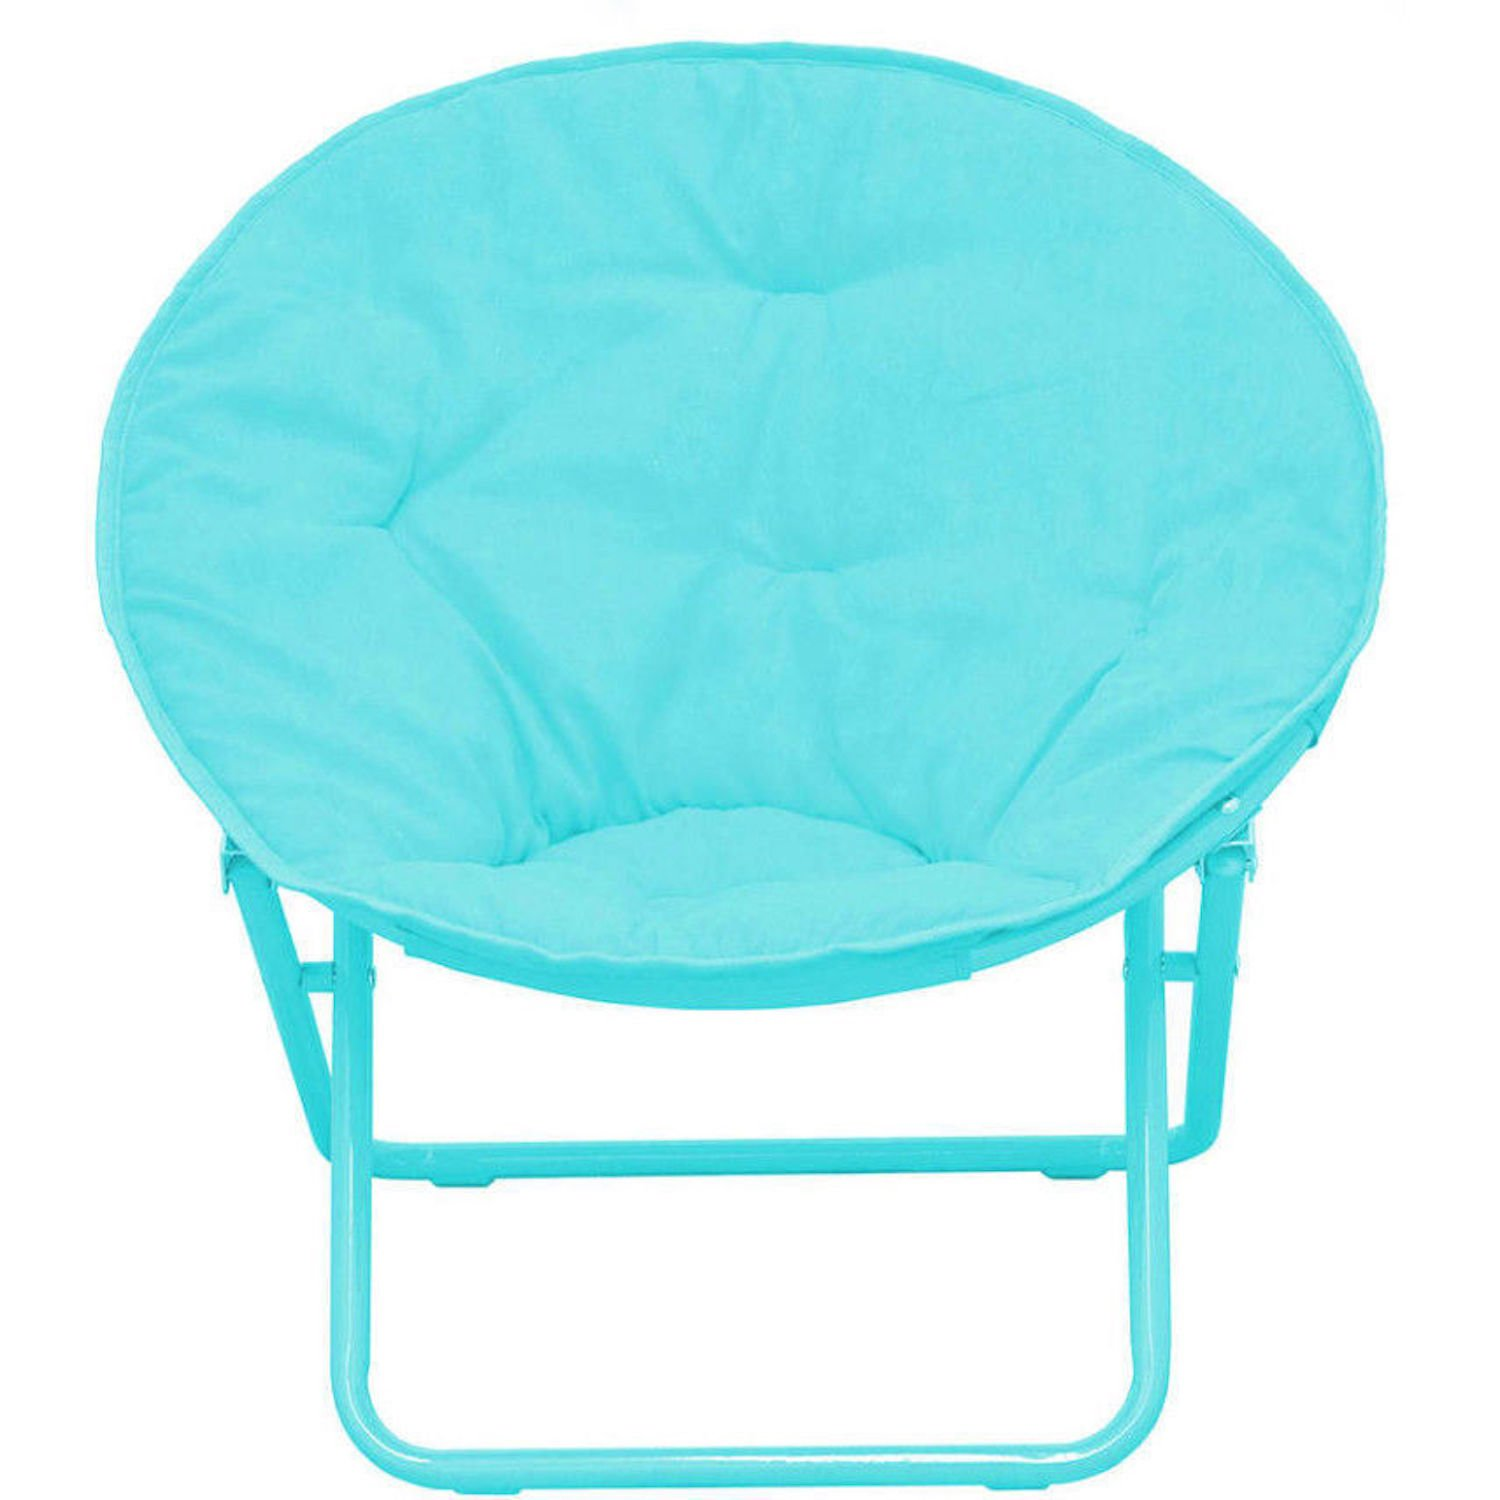 American Kids Solid Faux-Fur Saucer Chair, Color: Teal by American Kids